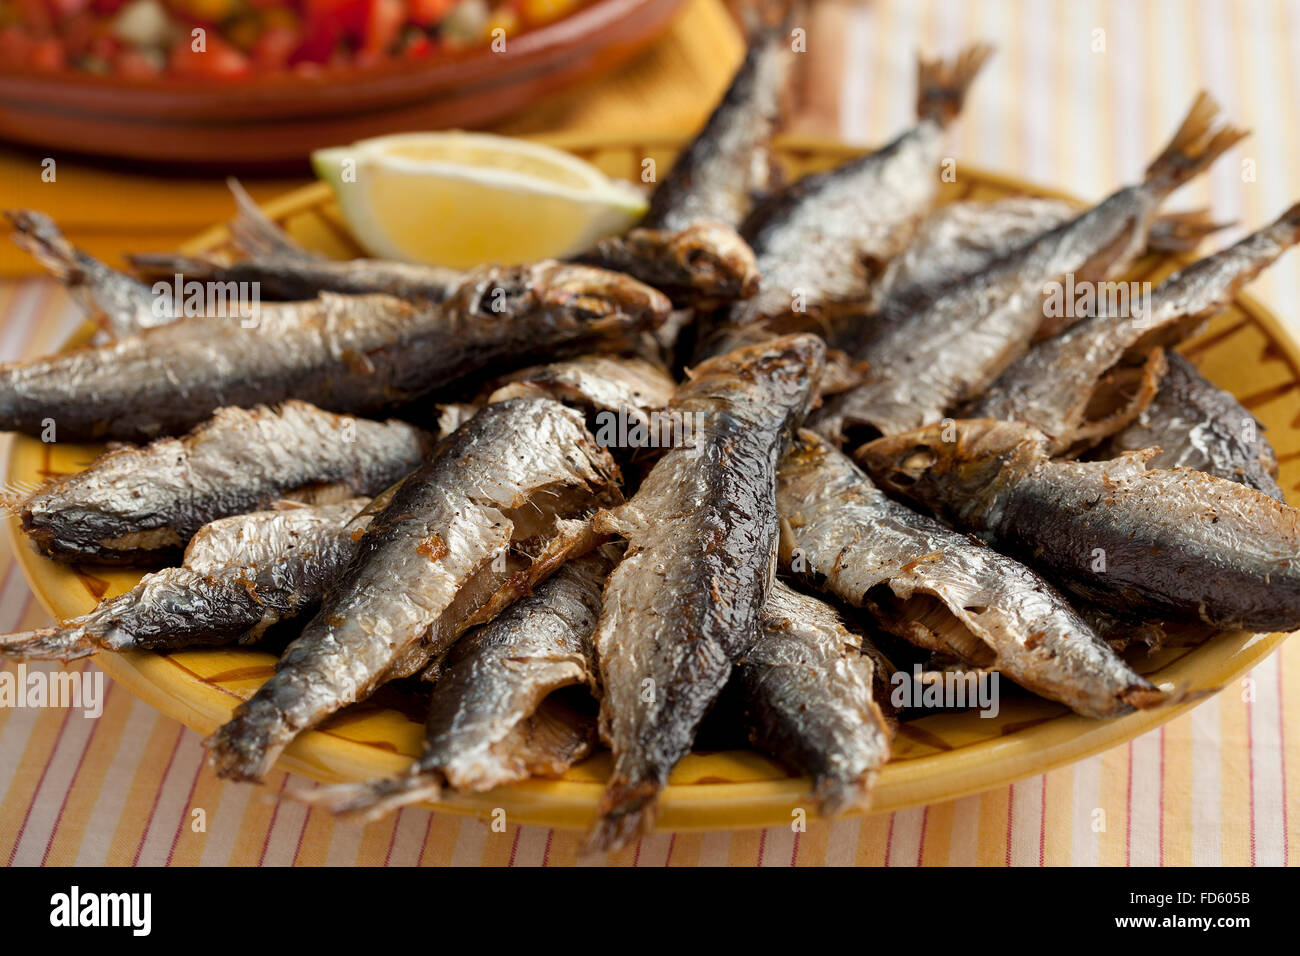 Fresh barbecued sardines on a dish - Stock Image